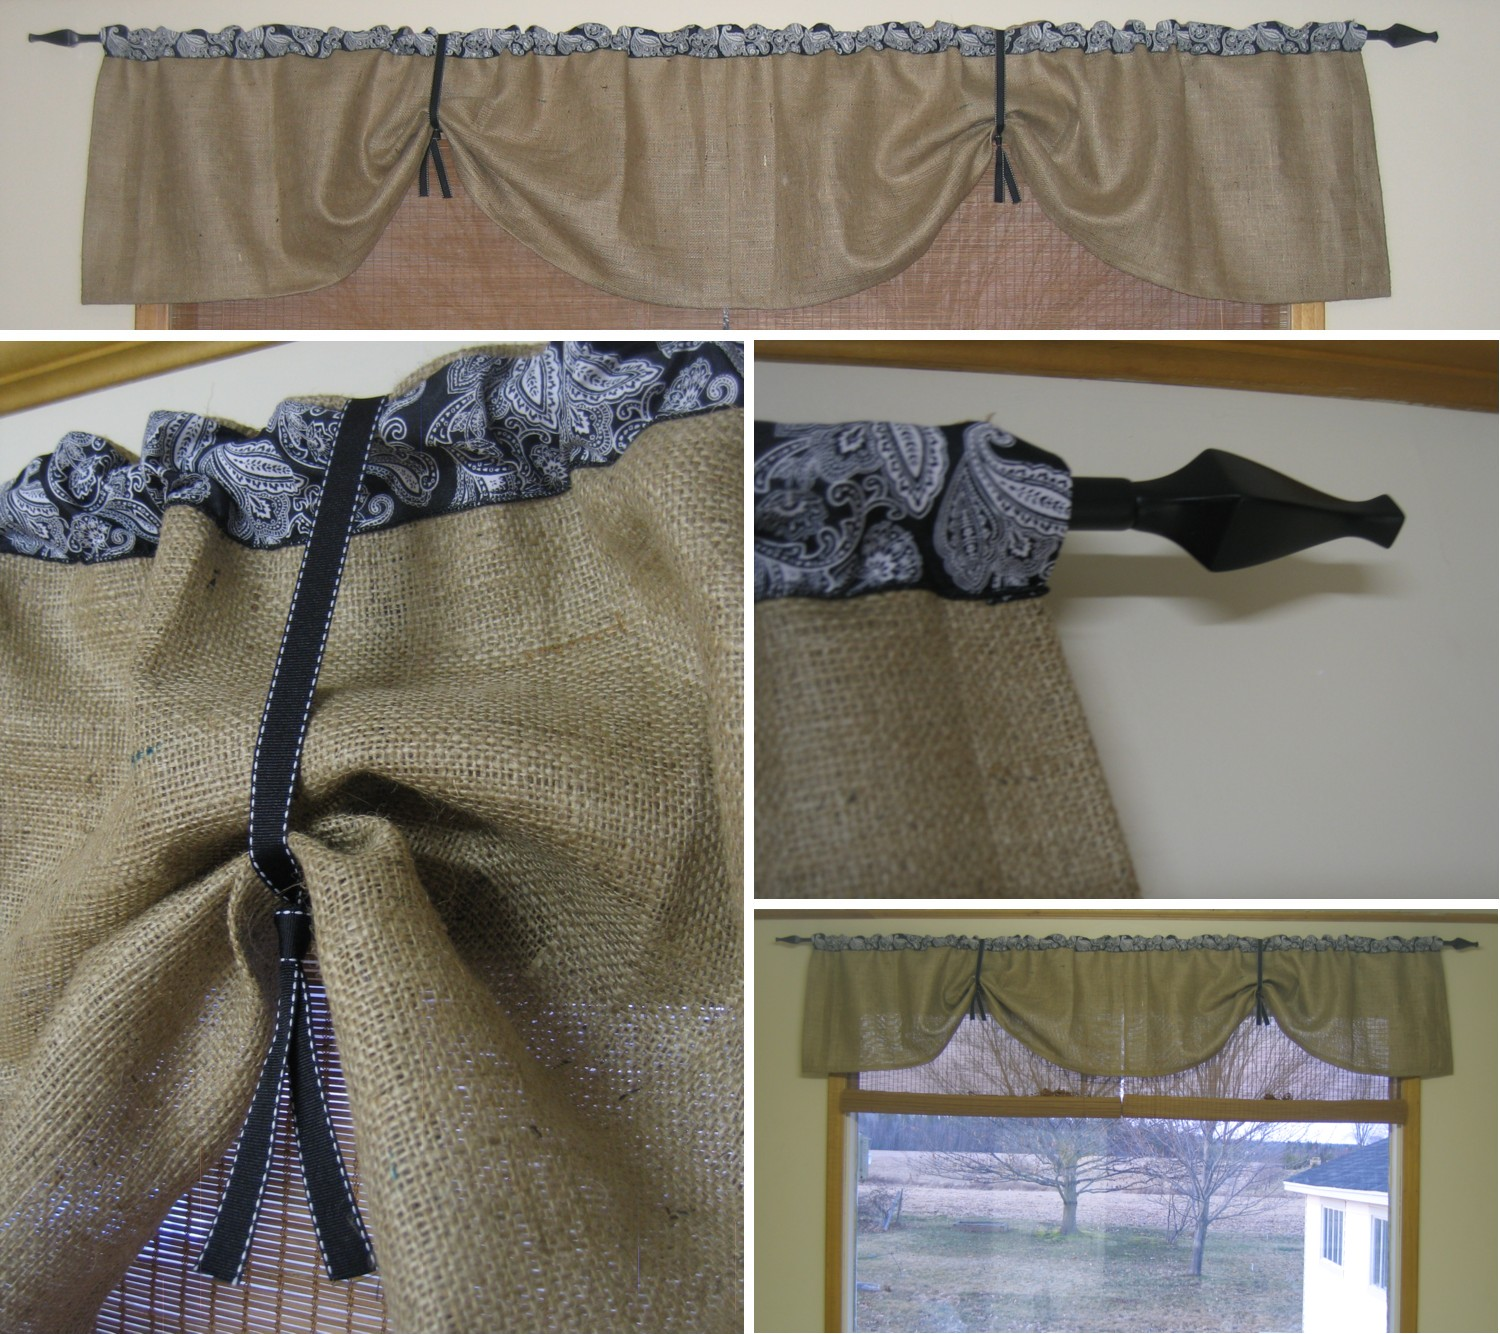 Burlap kitchen curtains no sew - Burlap Kitchen Curtains I Used A Piece Of Burlap 36 X54 Cut In Half Lengthwise